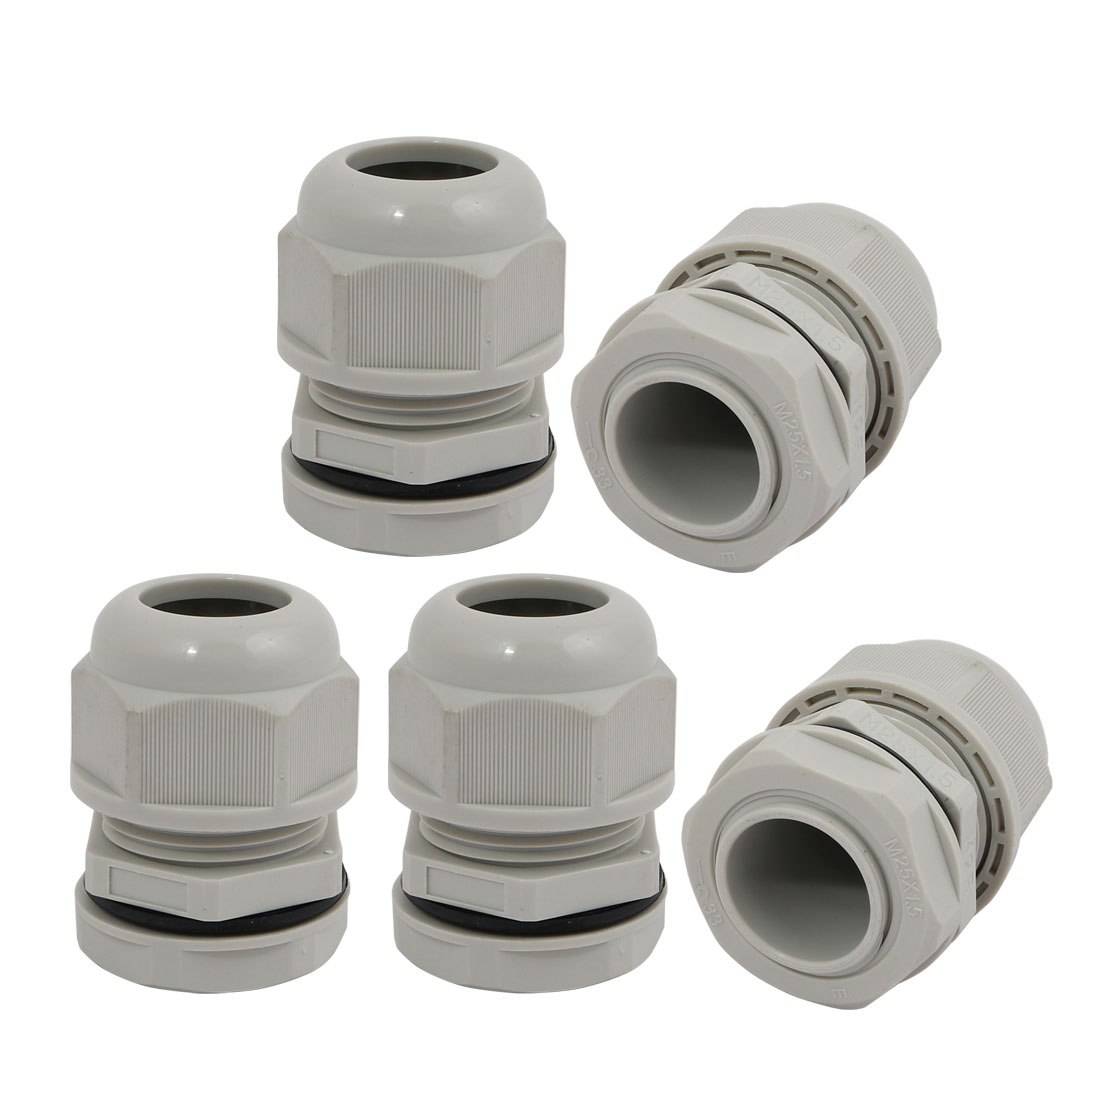 5pcs M25 x 1.5mm Nylon 6 Holes Cable Gland Connector Joint Gray MA25-H6-05